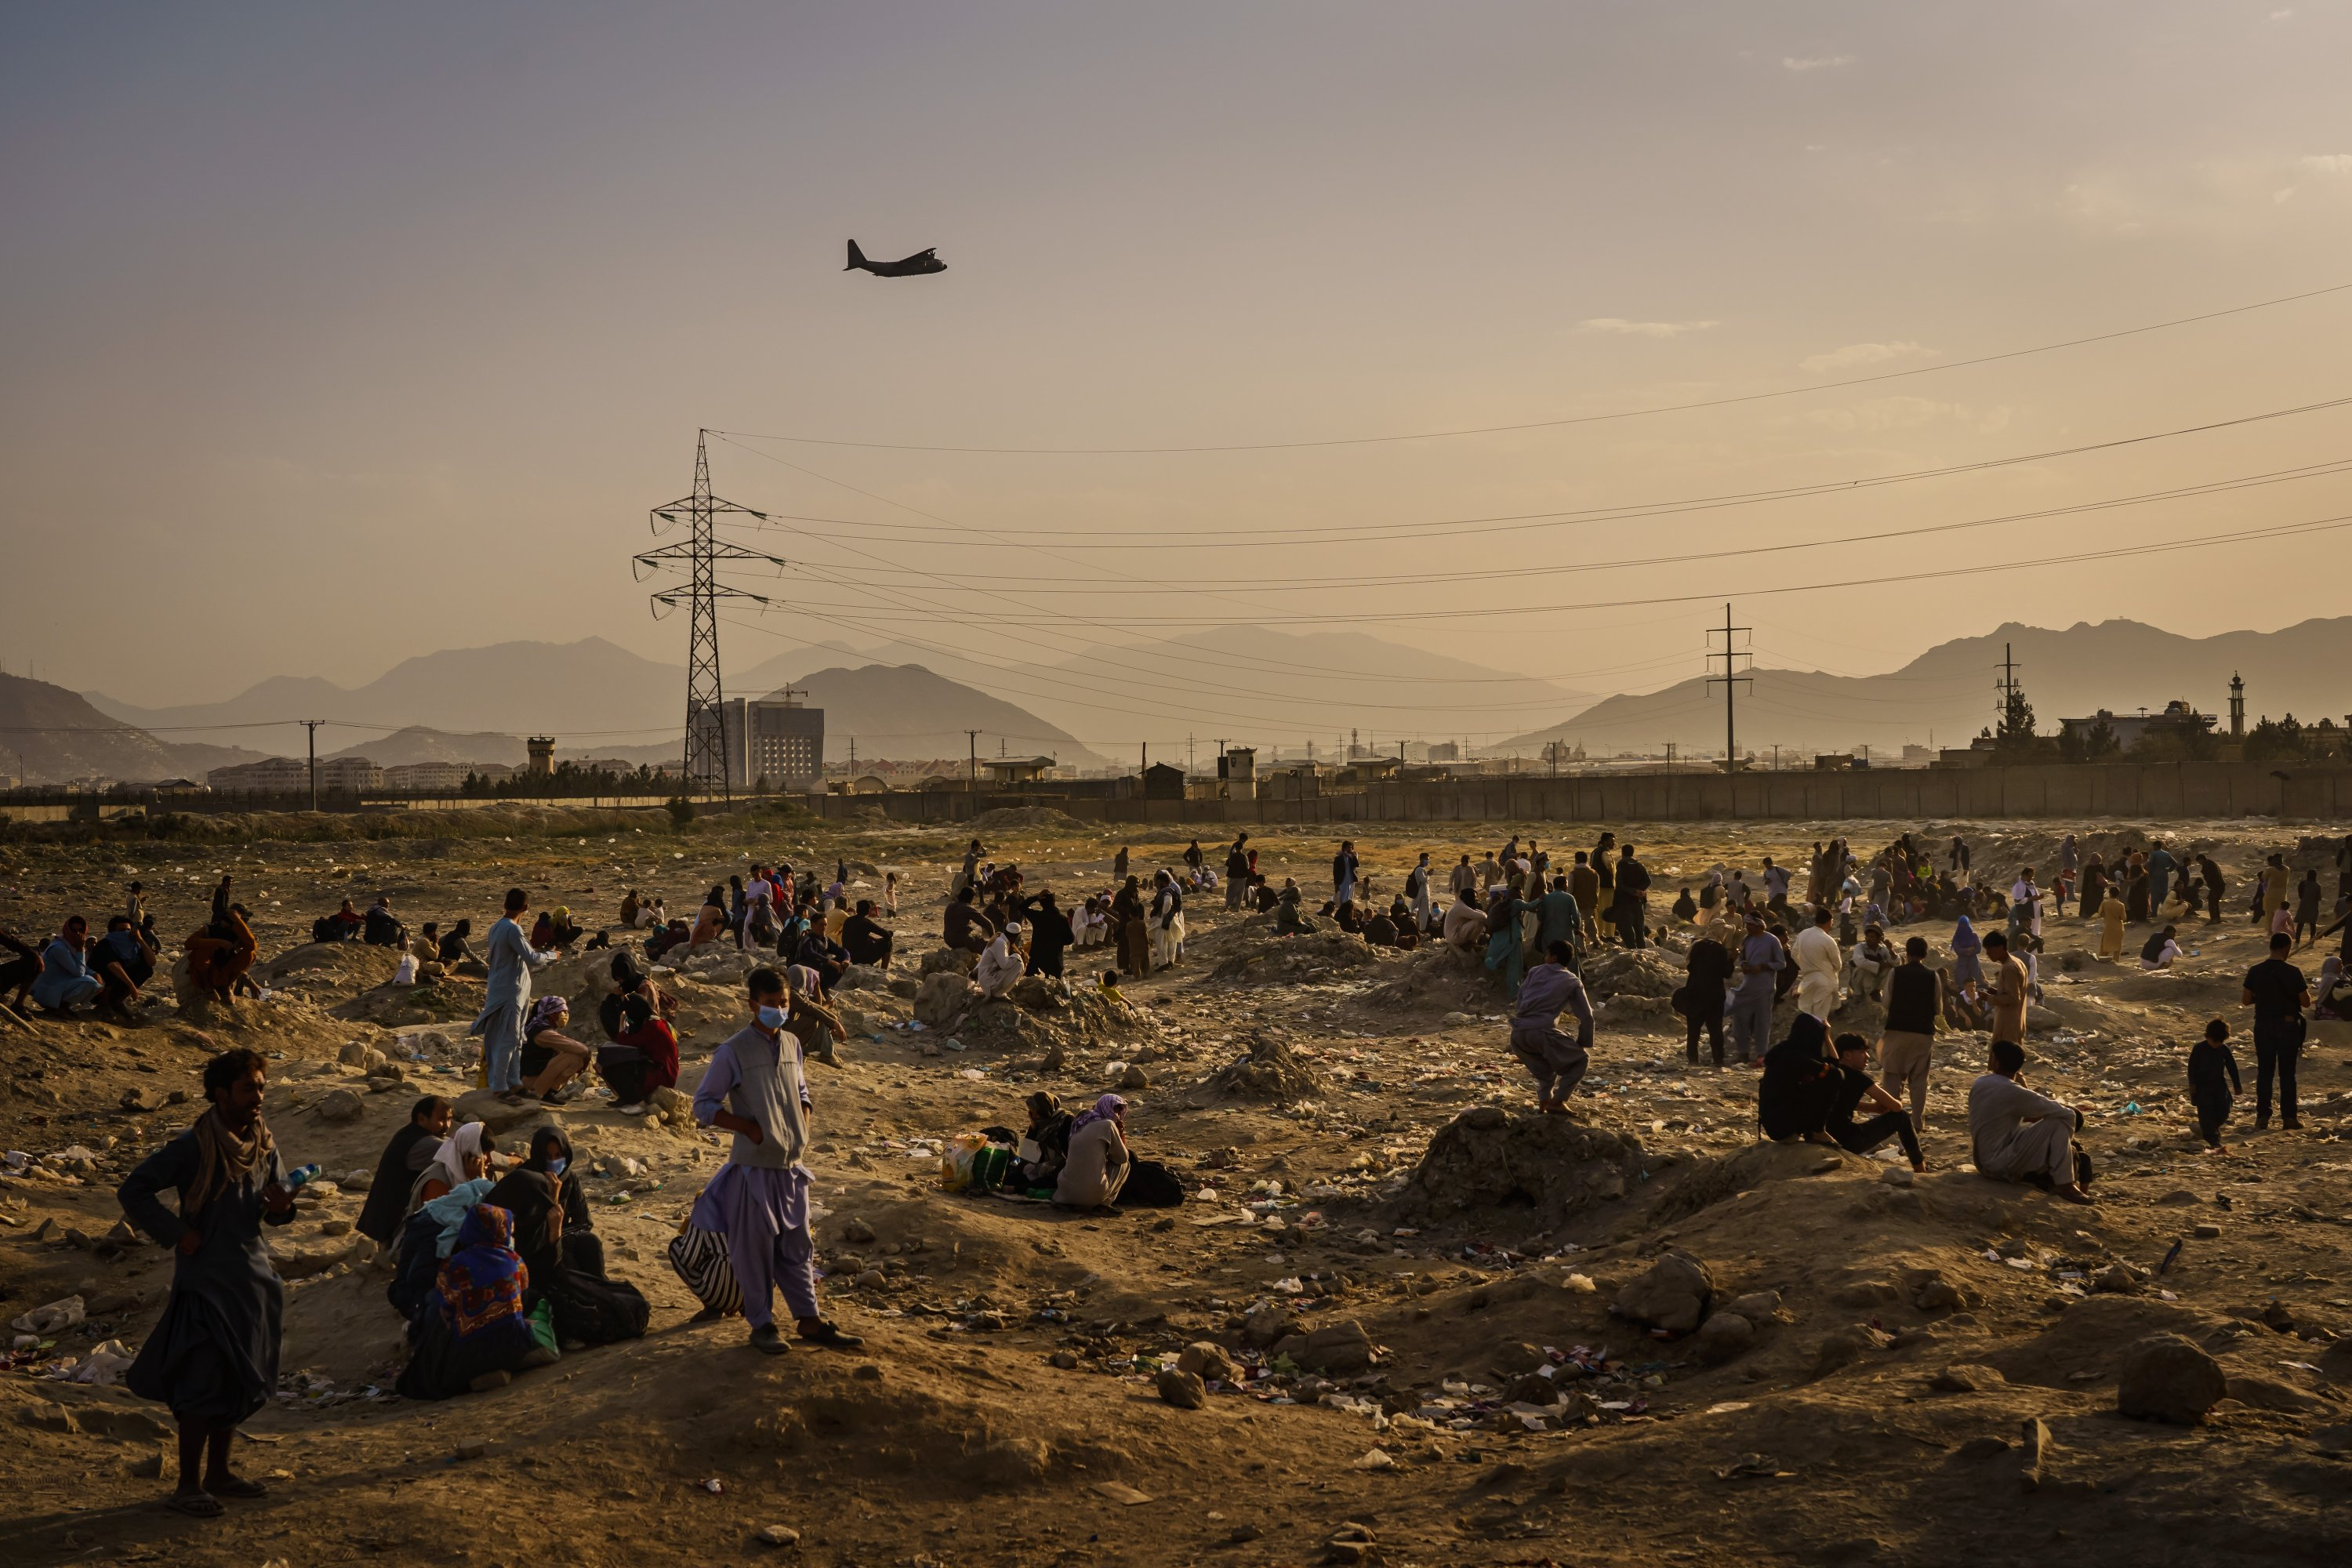 A military transport plane takes off while Afghans who cannot get into the airport to evacuate, watch and wonder while stranded outside, in Kabul, Afghanistan, Aug. 23, 2021. (Photo by Getty Images)